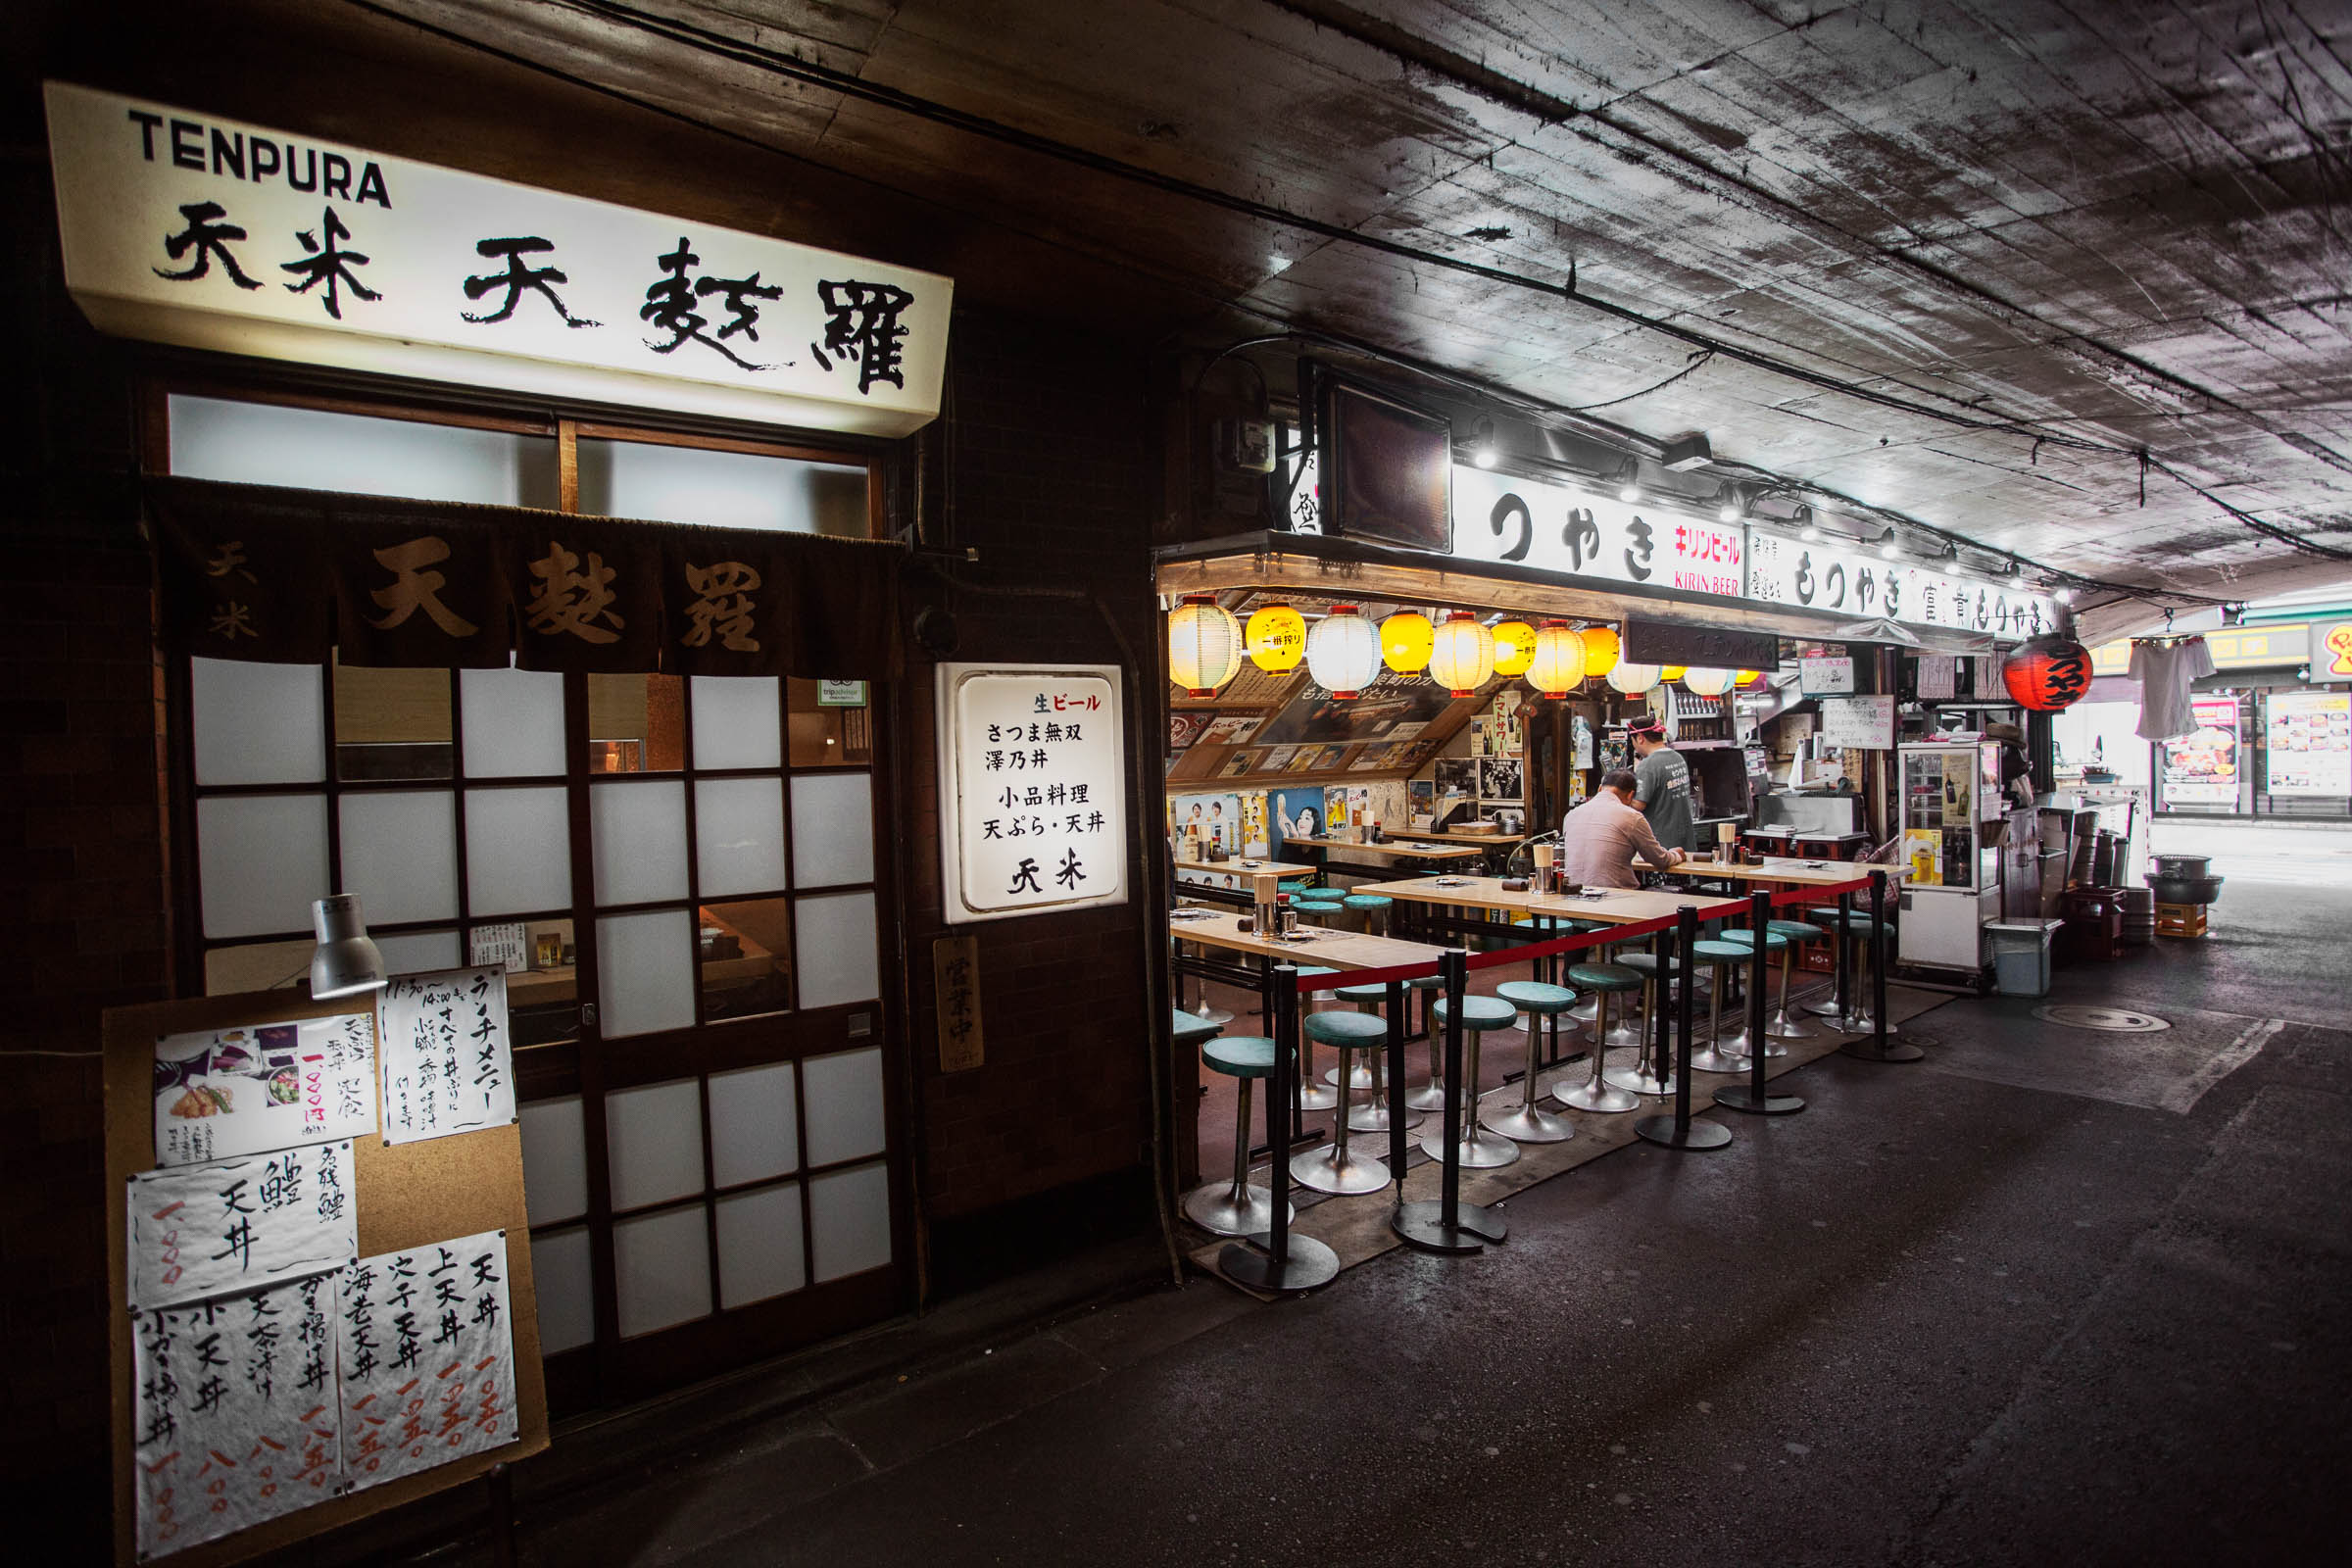 Chacon Images_Japan_Web-35.jpg